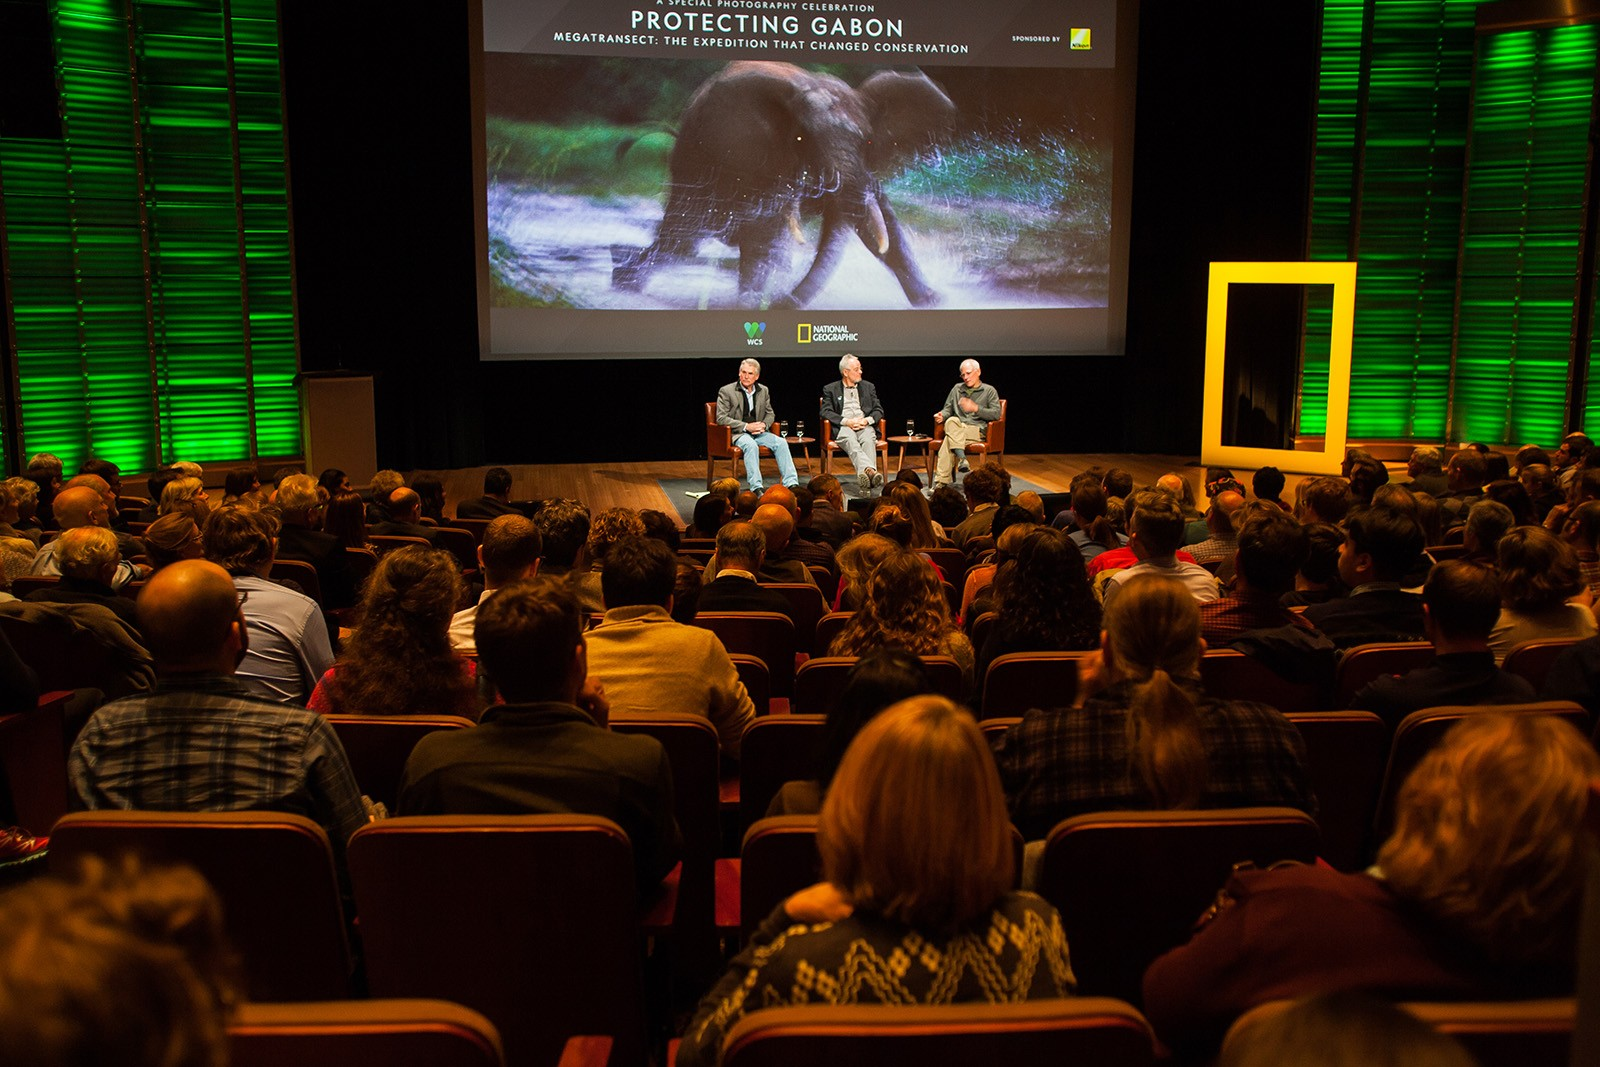 "David Quammen, Michael ""Nick"" Nichols and Mike Fay at Protecting Gabon: The Expedition that Changed Conservation."